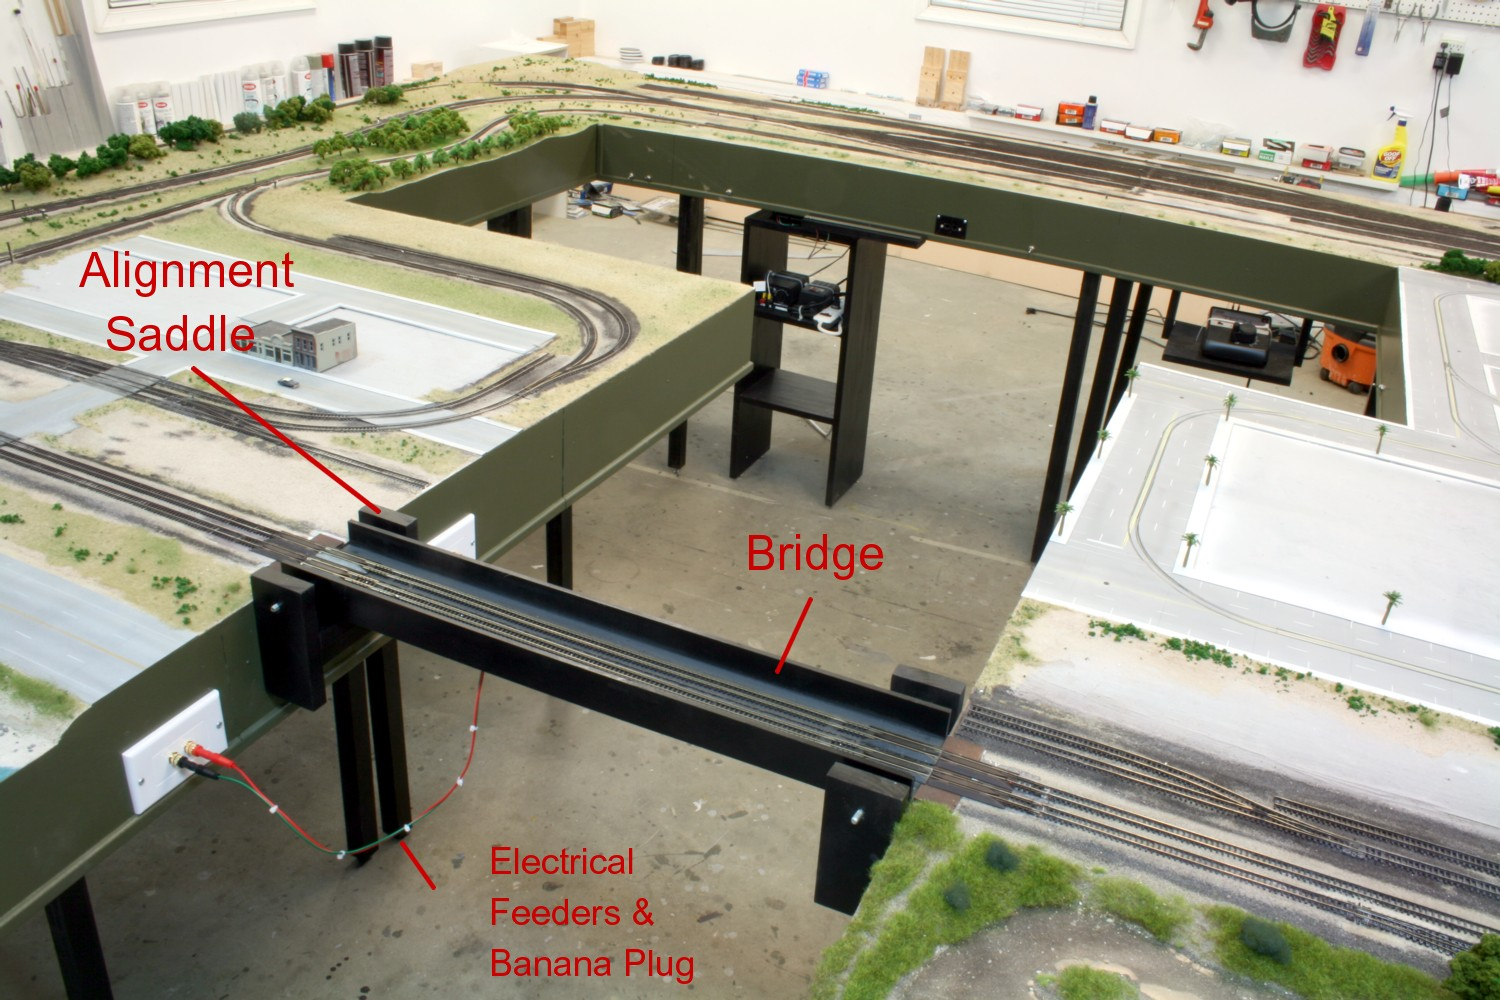 Wiring A Model Railroad Lift Bridge Not Lossing Diagram Train Track Removable Lancemindheim Com Rh Turnouts